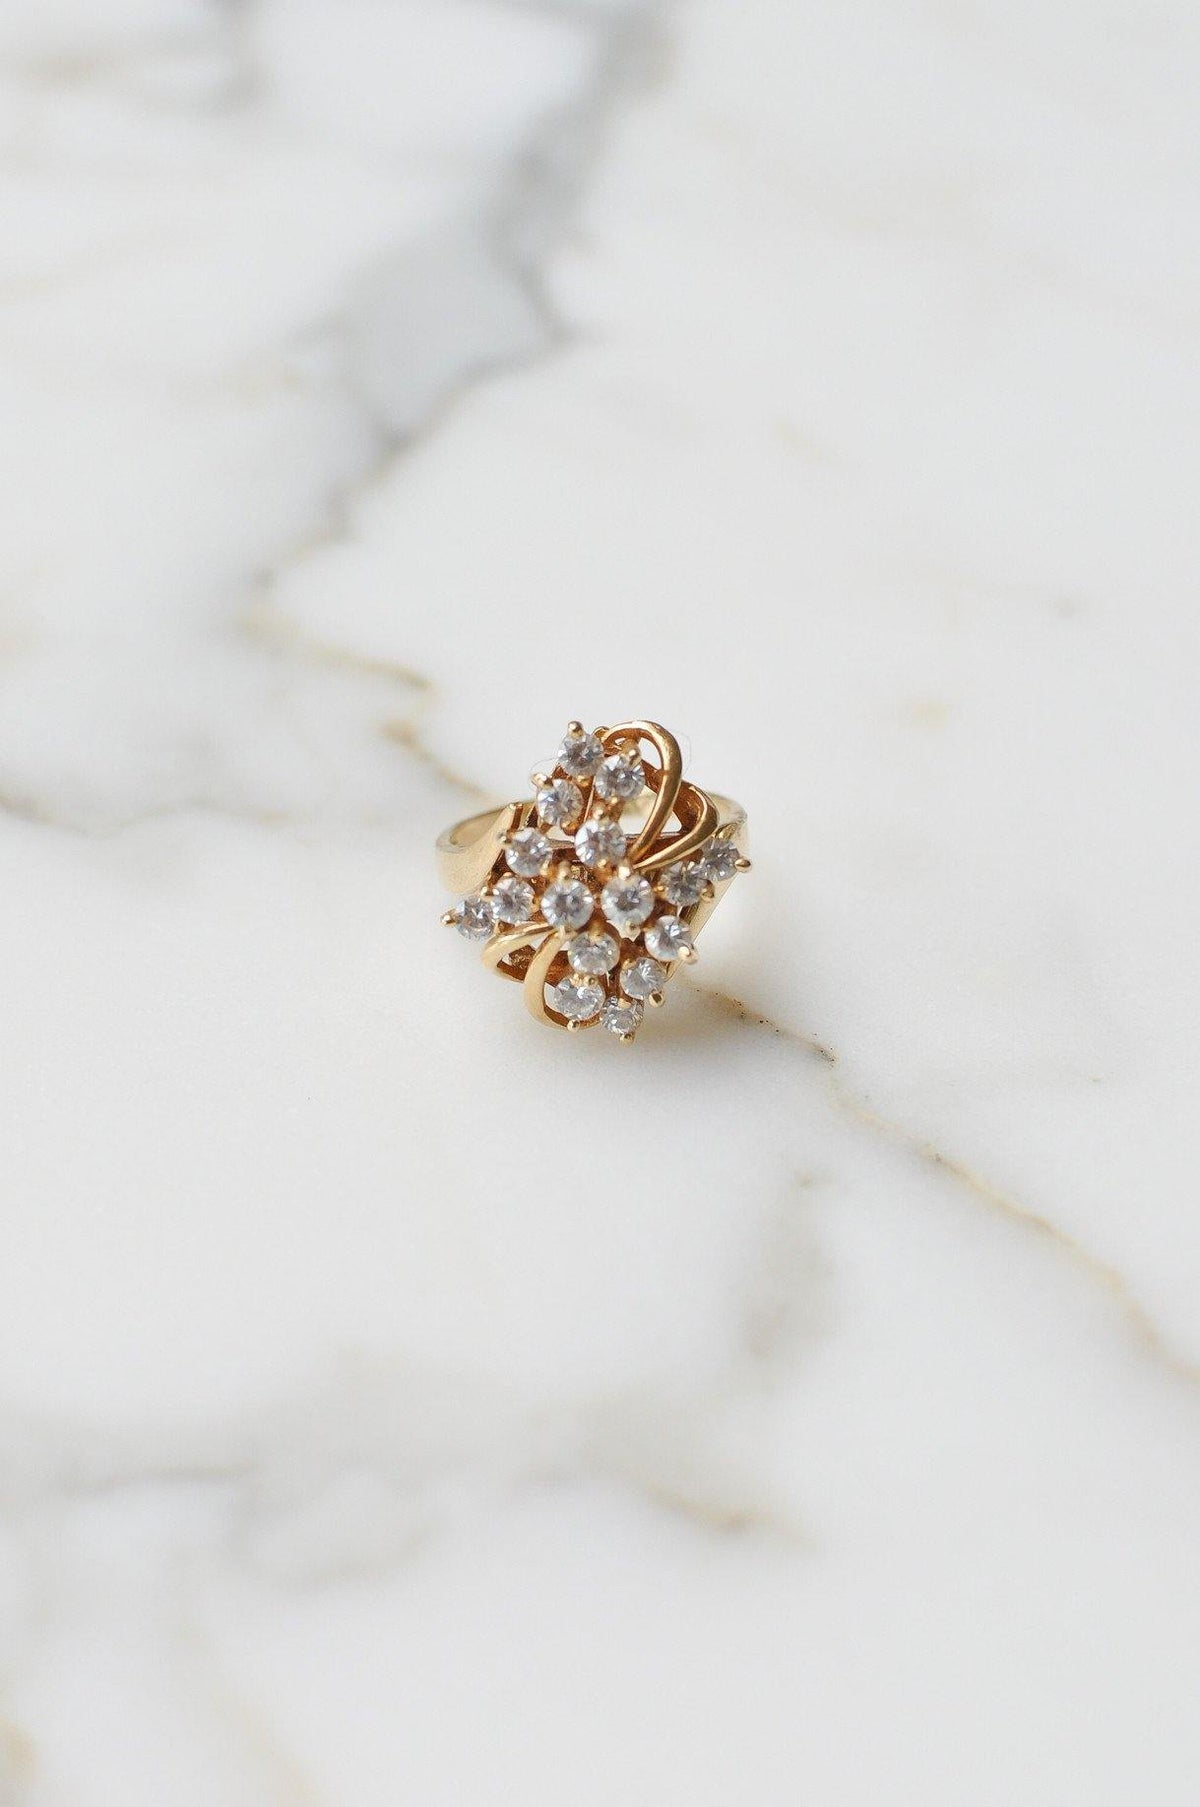 __Gold West Vintage__White Sapphire Floral Ring